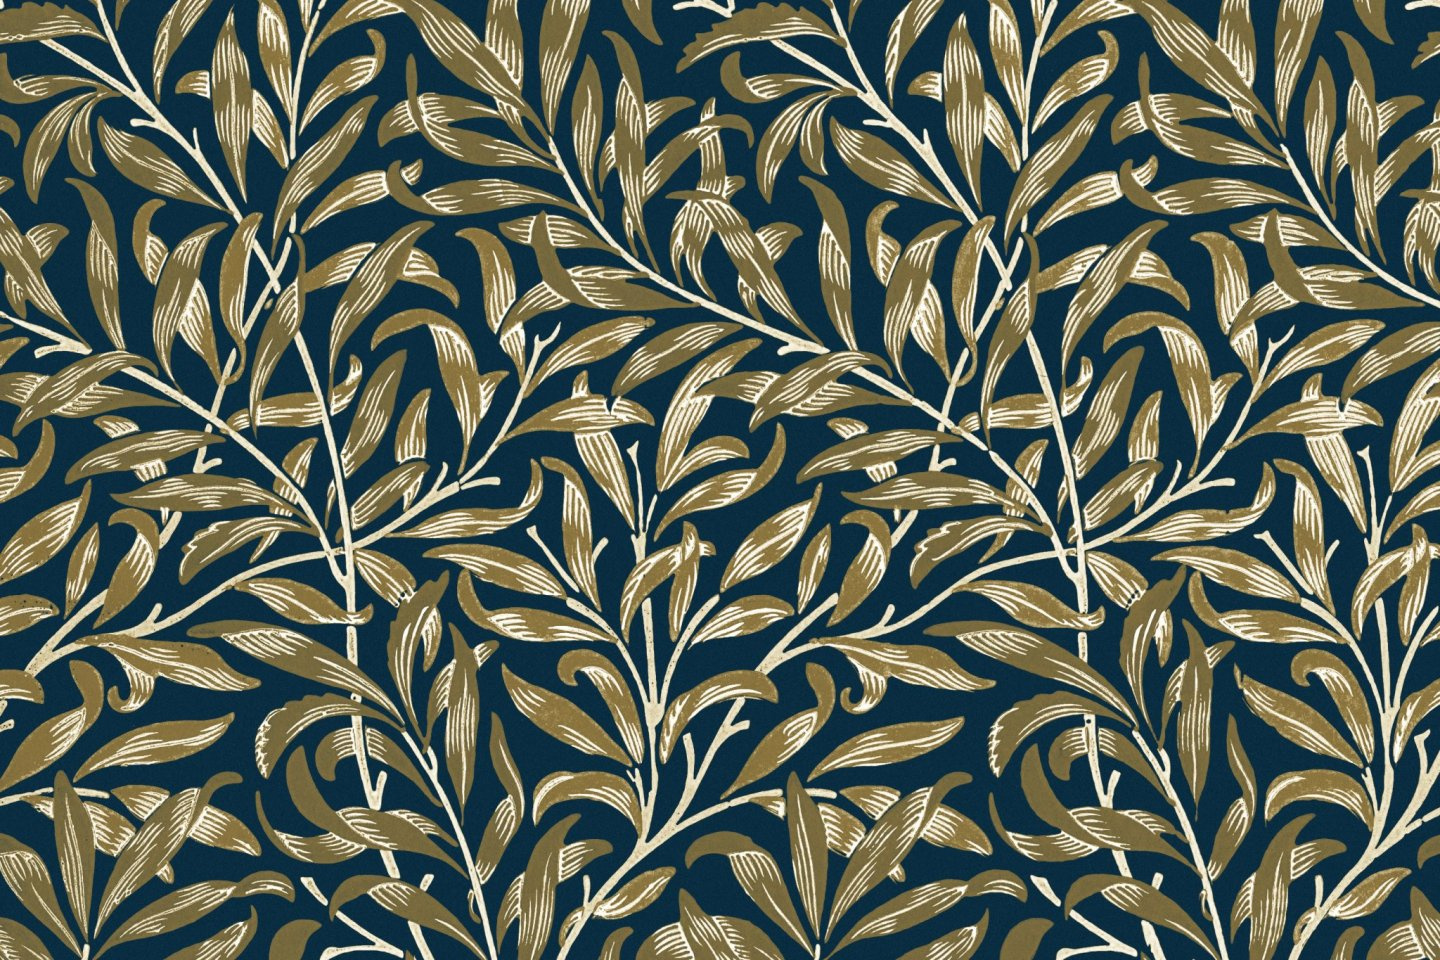 William Morris was known for his textile designs which often incorporated natural elements.